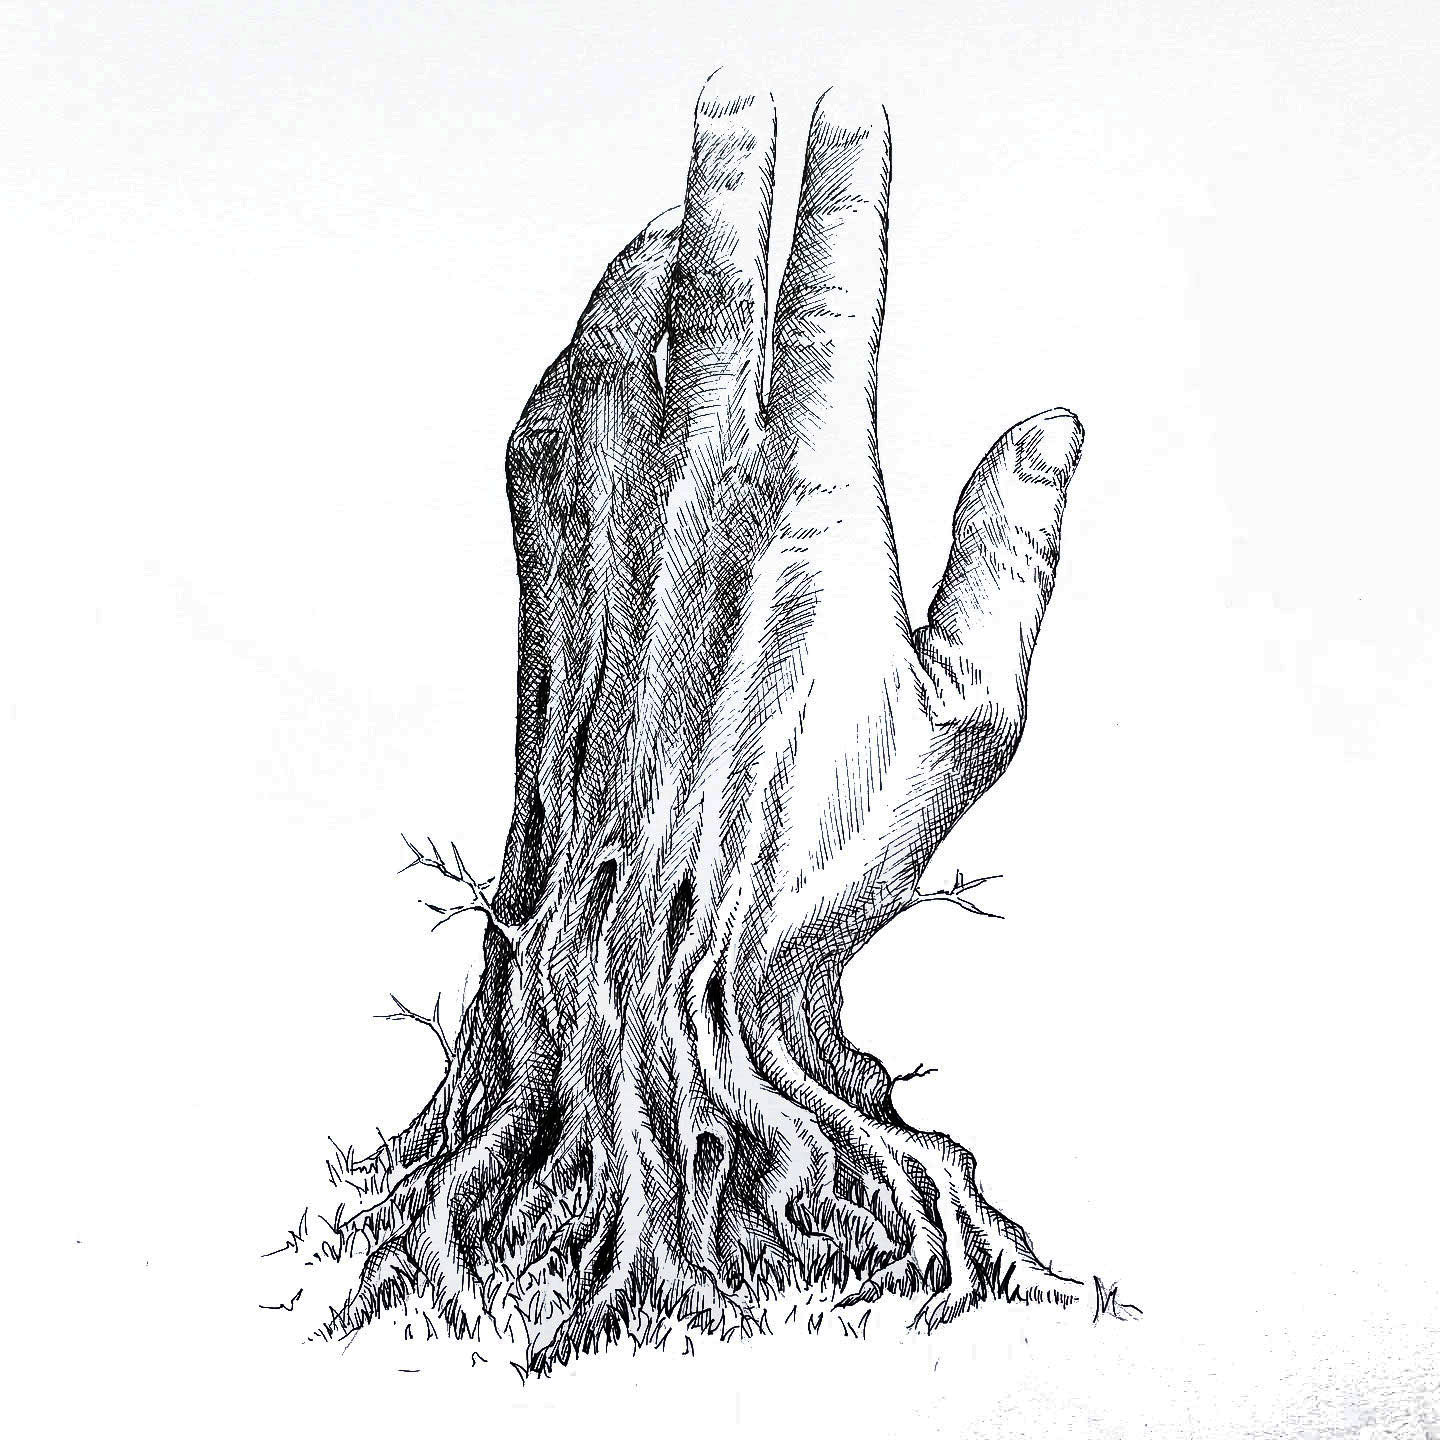 Hand with Roots by Zach Johnson